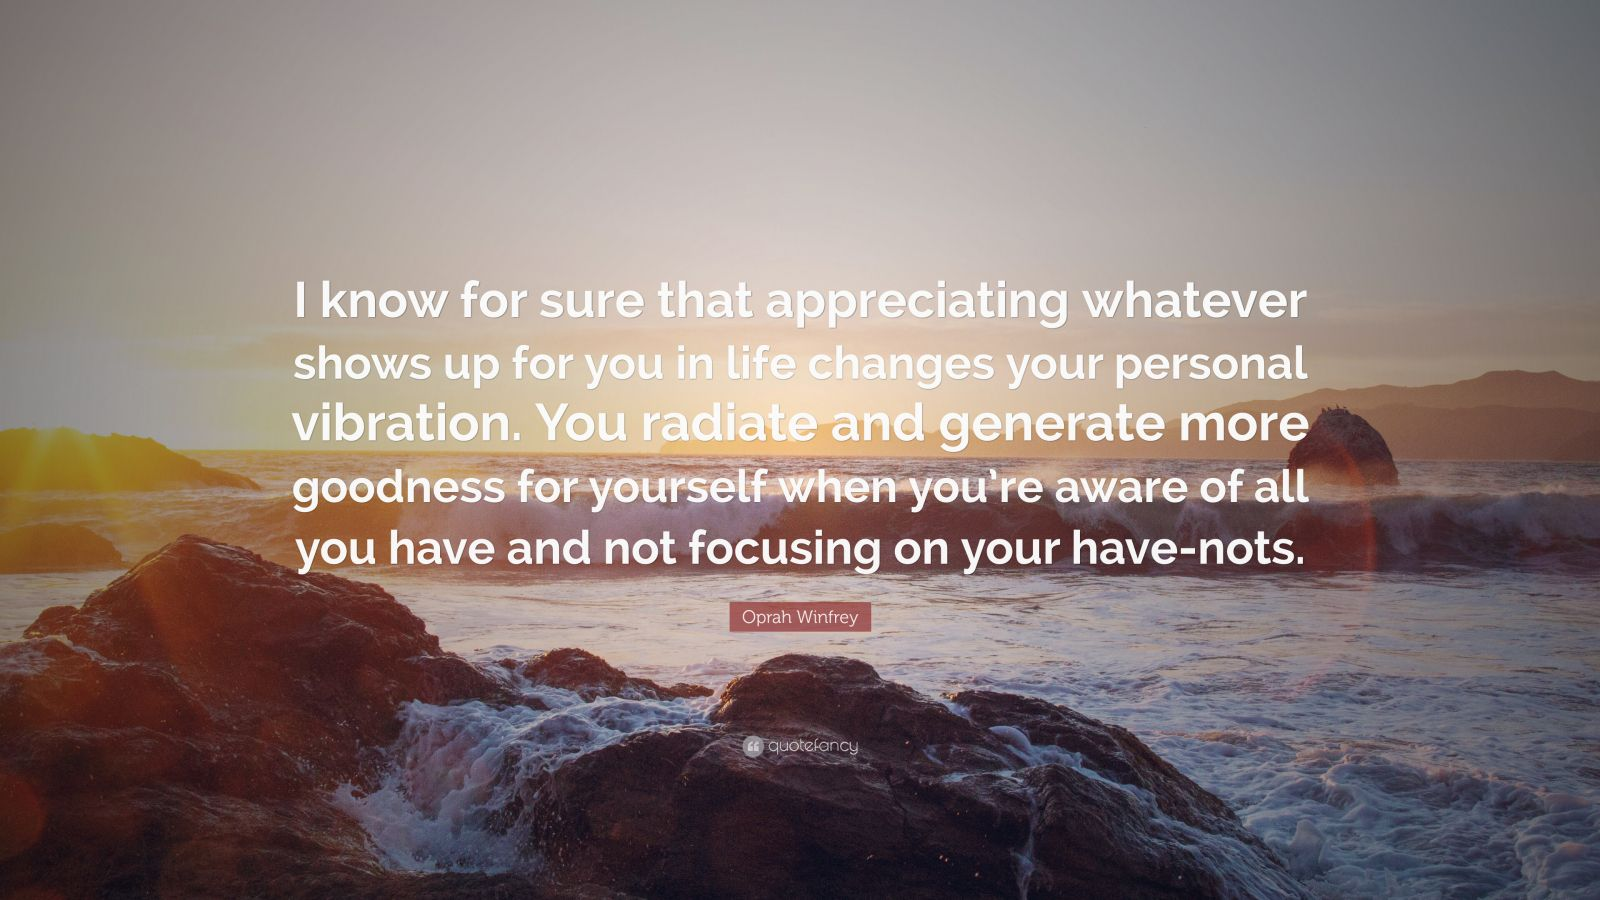 """Oprah Winfrey Quote: """"I know for sure that appreciating whatever shows up for you in life changes your personal vibration. You radiate and generate more goodness for yourself when you're aware of all you have and not focusing on your have-nots."""""""